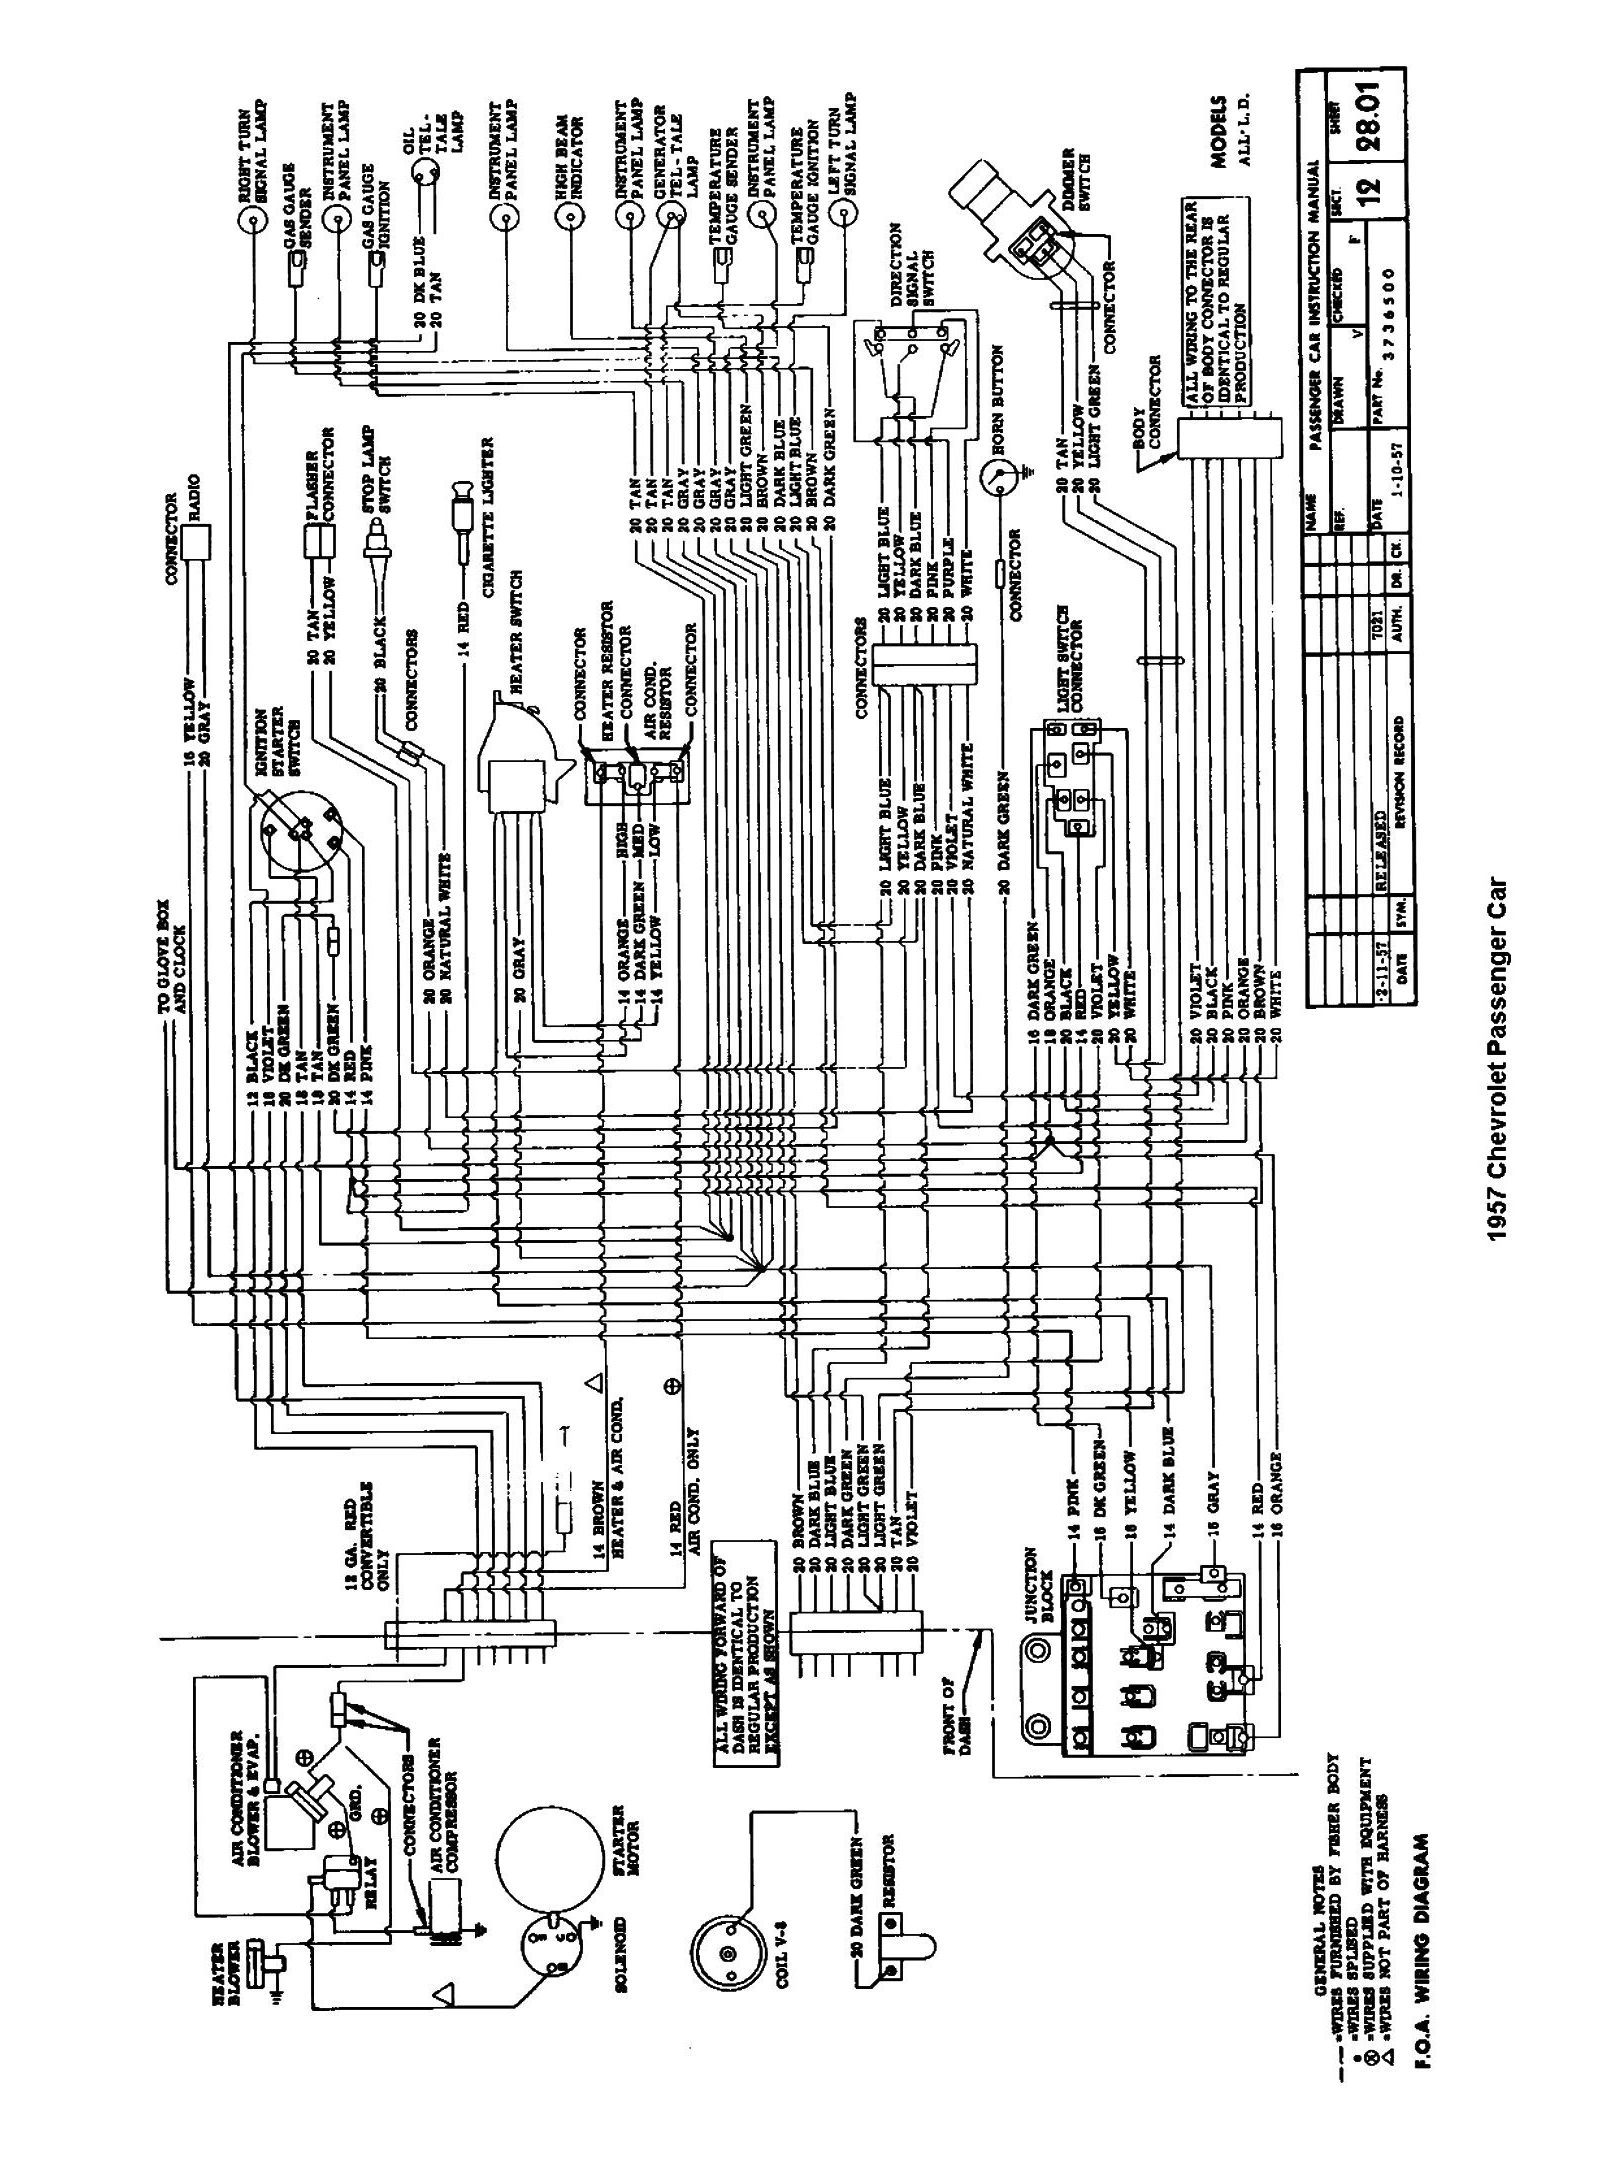 79 corvette wiring diagram cigarette lighter schematics wiring rh ssl forum  com 1979 Chevy Corvette Wiring